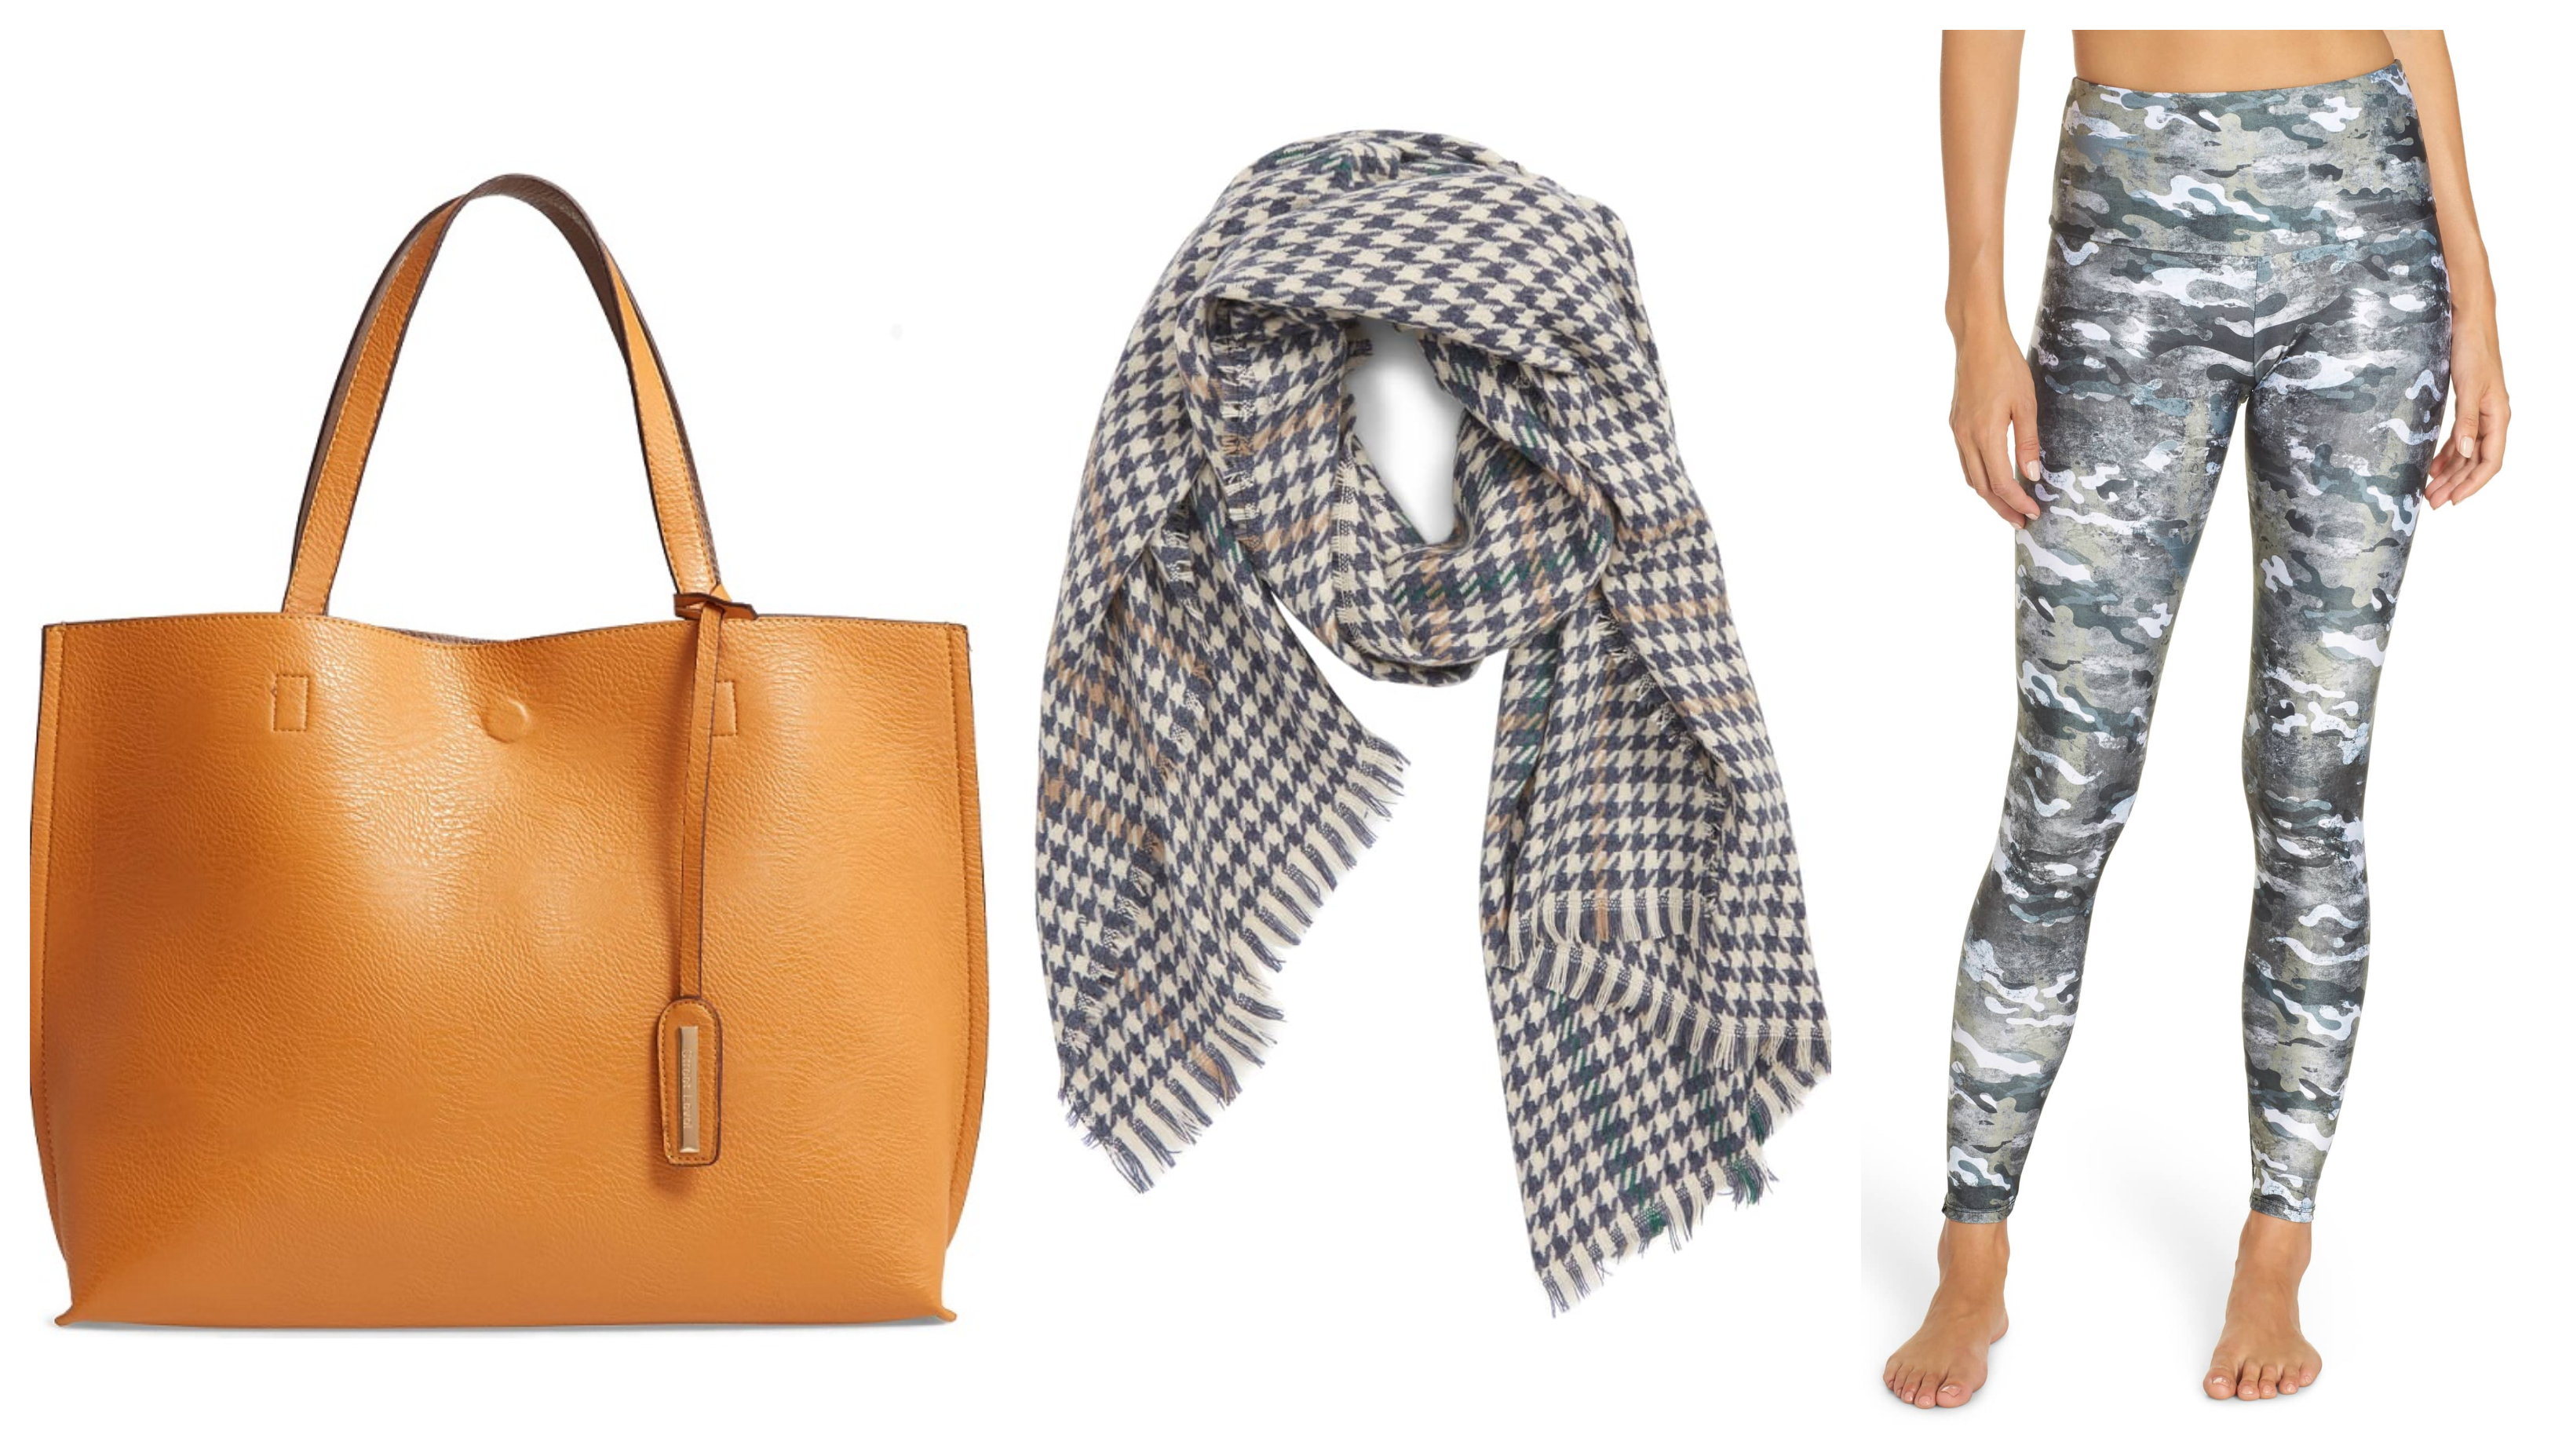 38bcdce712 Nordstrom: Reversible Faux Leather Tote & Wristlet – only $24 (reg $49)  Shipped + MORE!